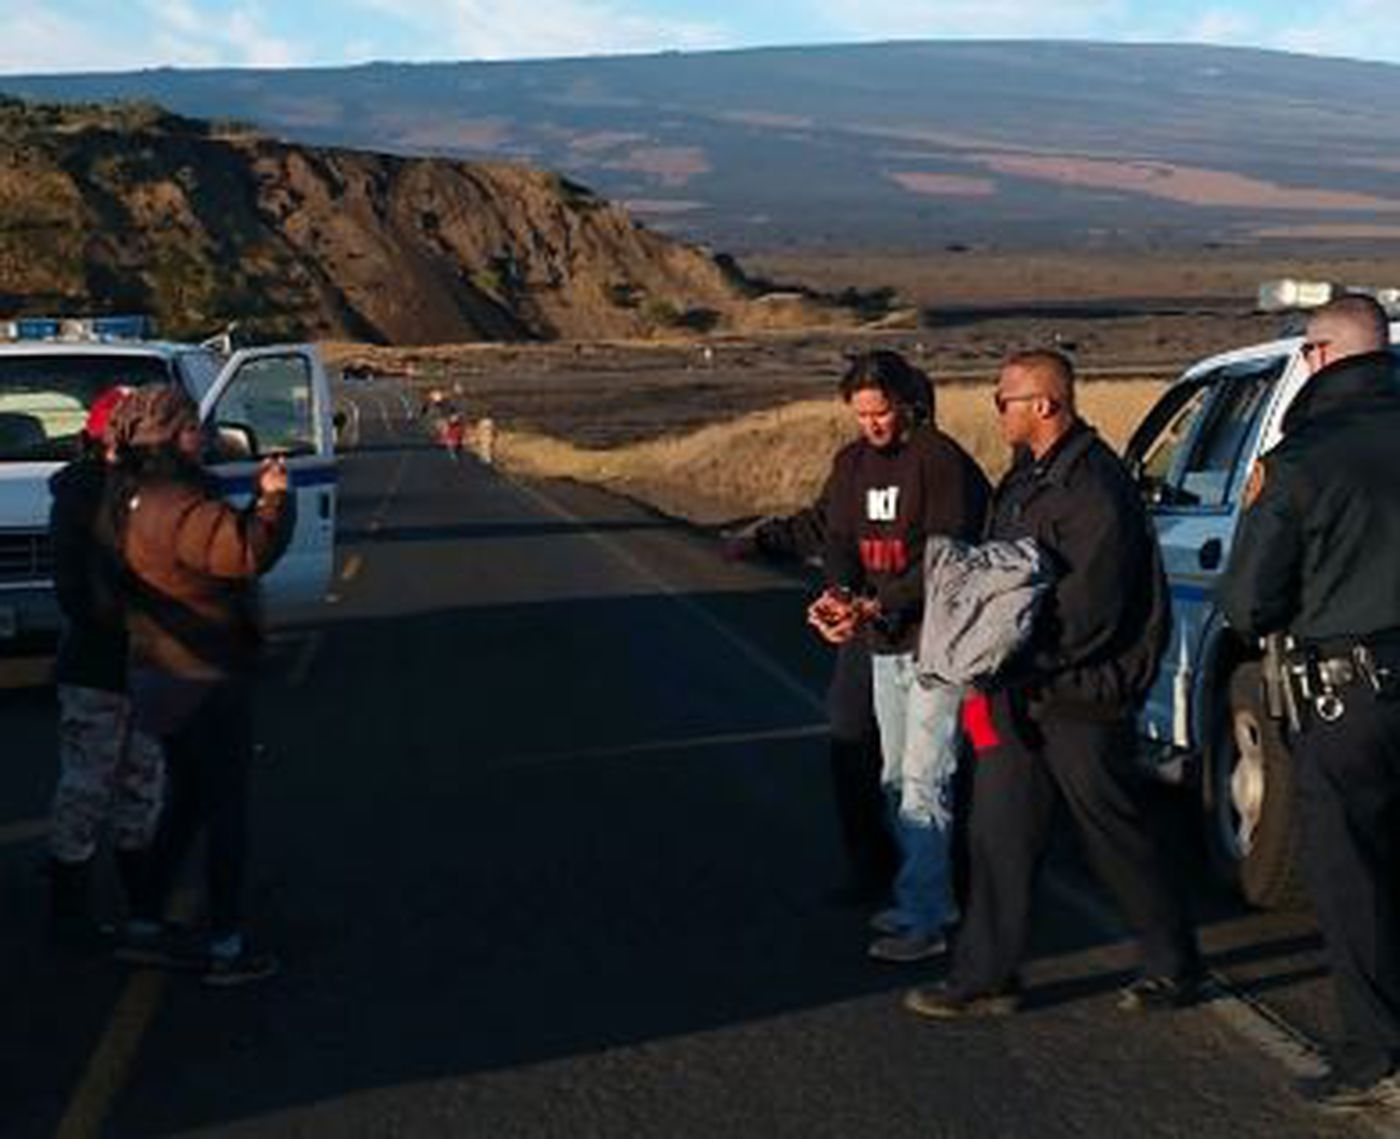 Officers arrested Kahookahi Kanuha on Thursday morning atop Mauna Kea in an apparent sign that construction of the TMT project is ramping up. (Image: Jennifer Ruggles)